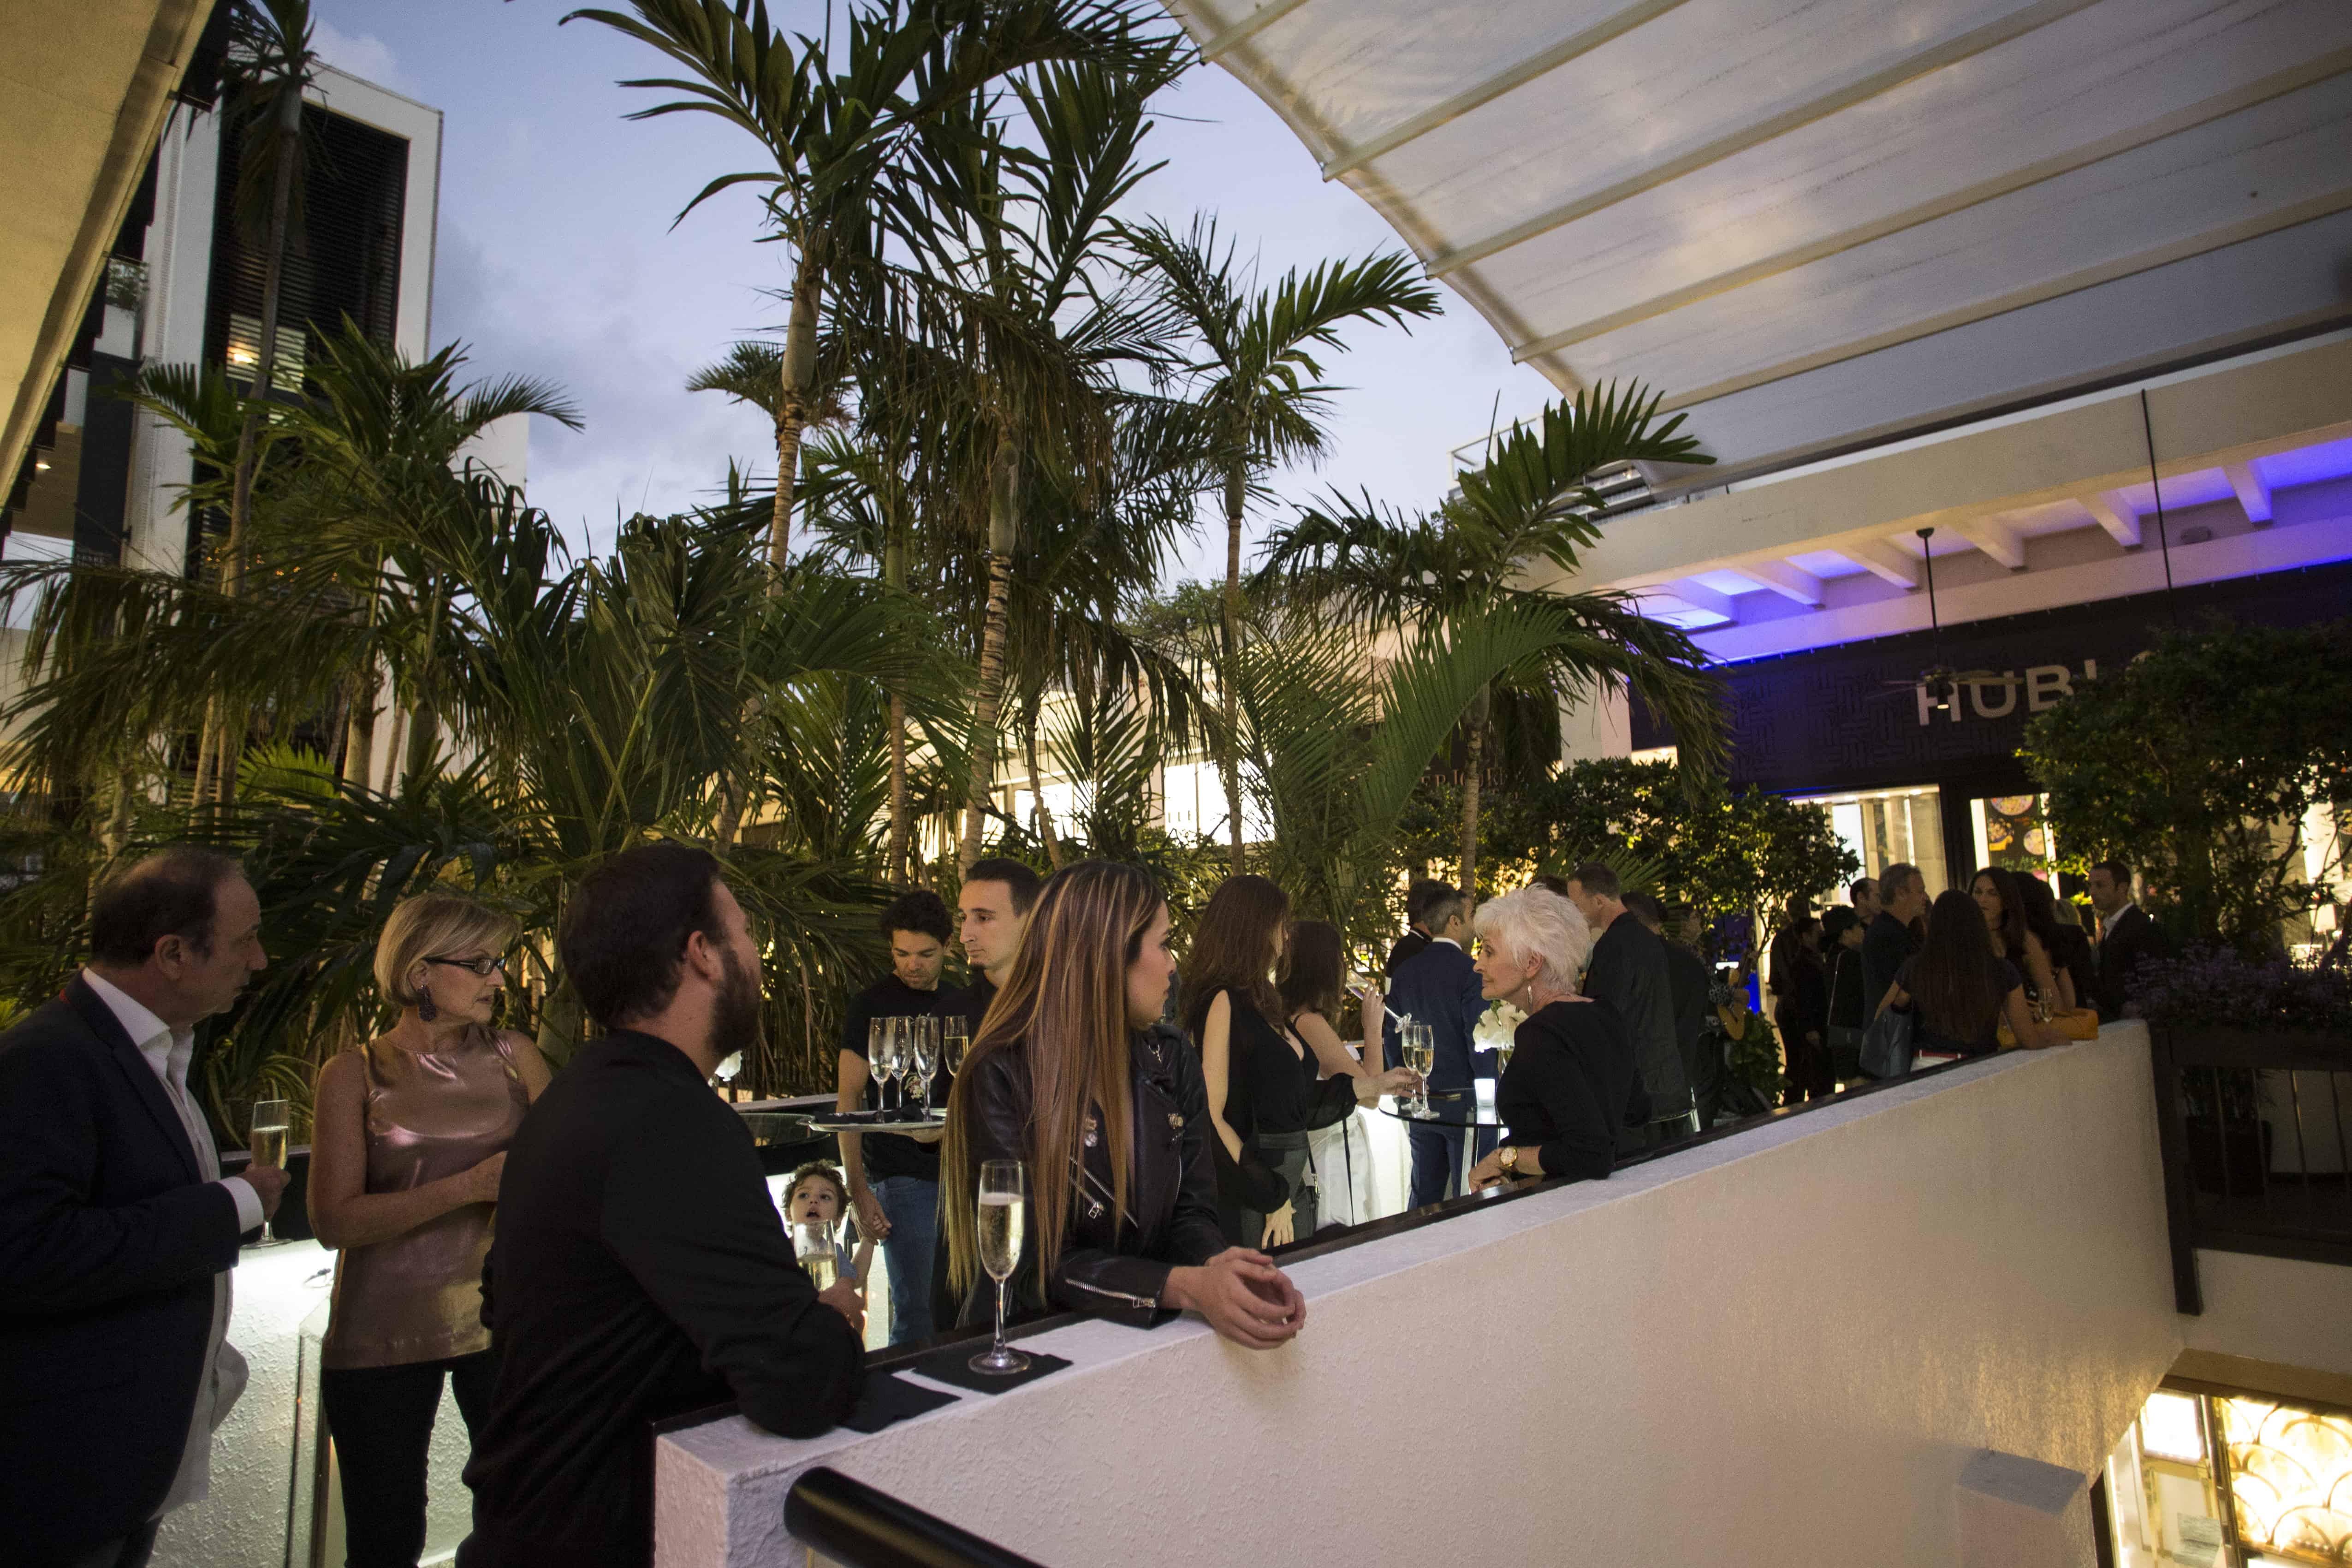 HublotBalHarbour Atmosphere 2 - What happens when Hublot and Best Buddies team up? Just watch!